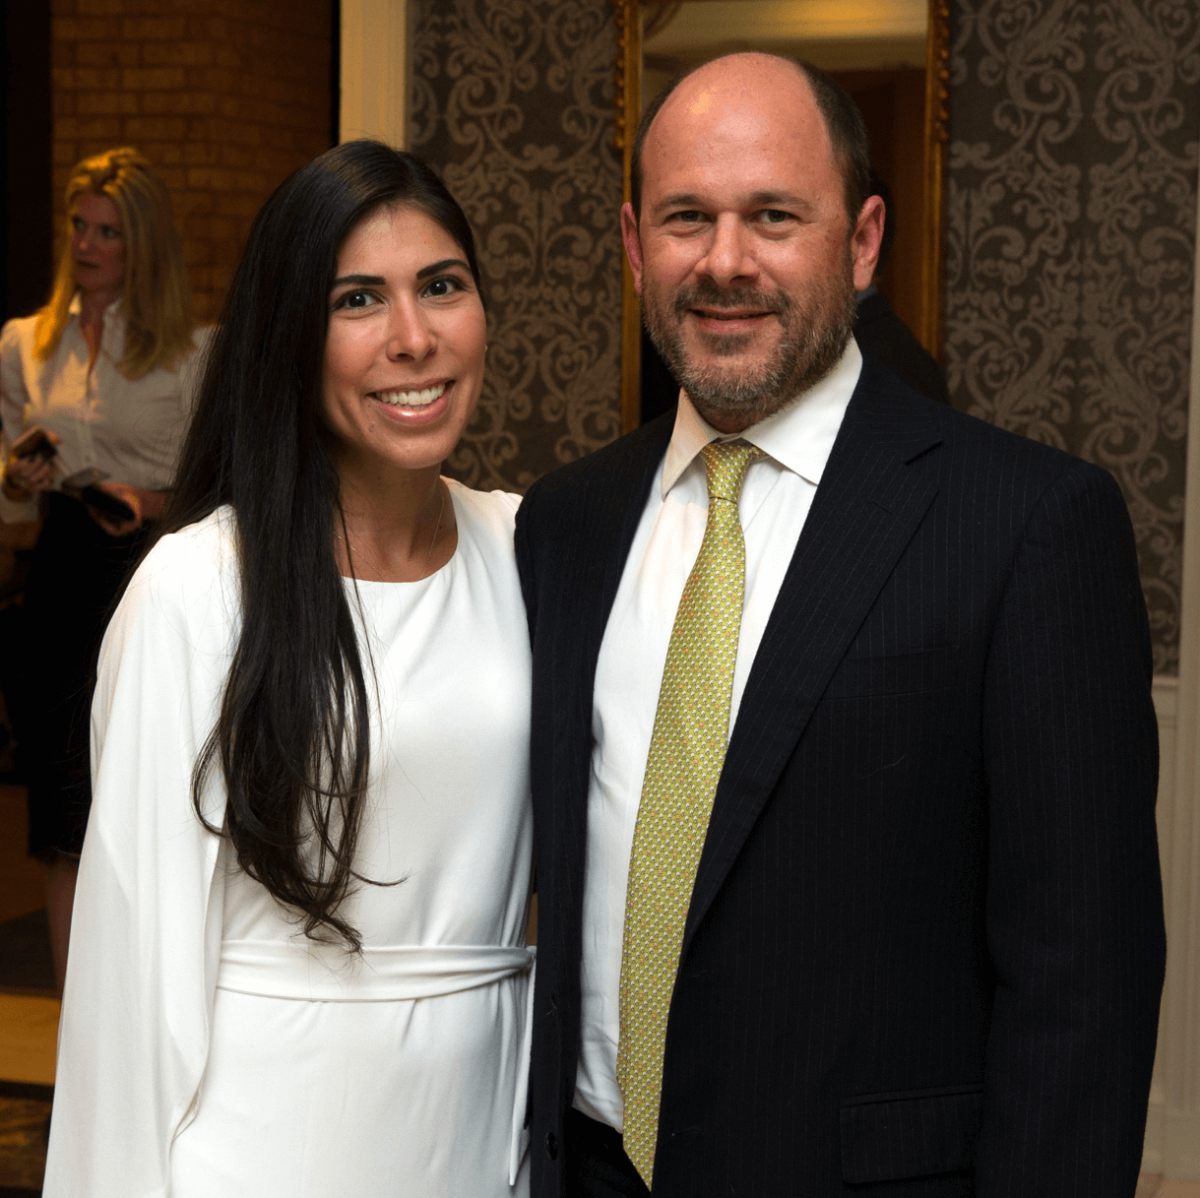 Houston, Legal Community's Harvest Celebration, Nov 2016, Sarah Cabello, Todd Frankfort